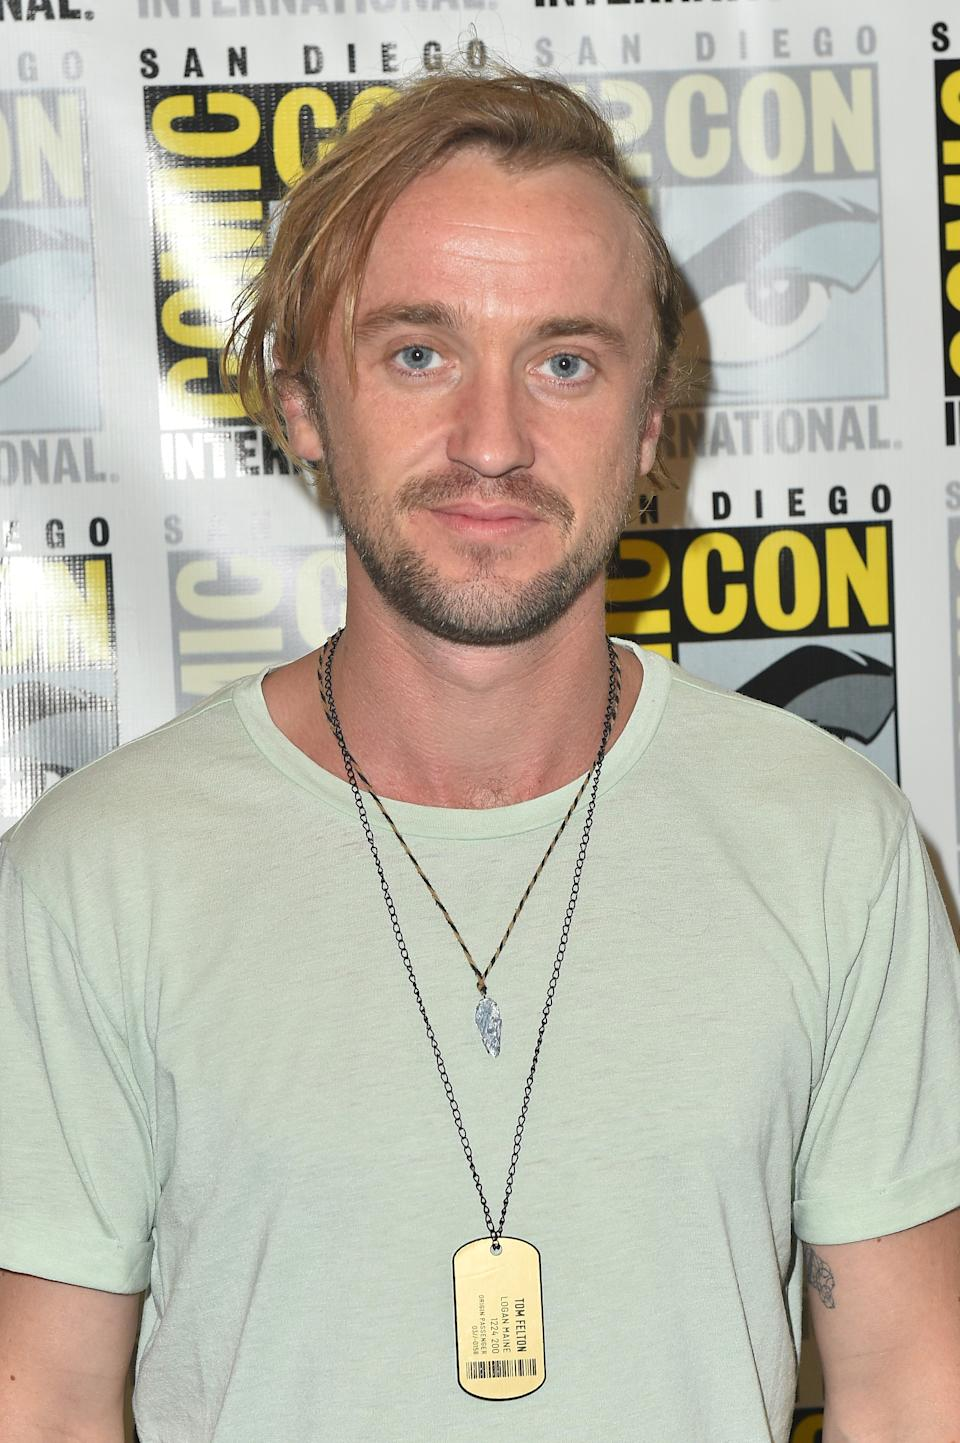 SAN DIEGO, CA - JULY 19:  Tom Felton attends YouTube's